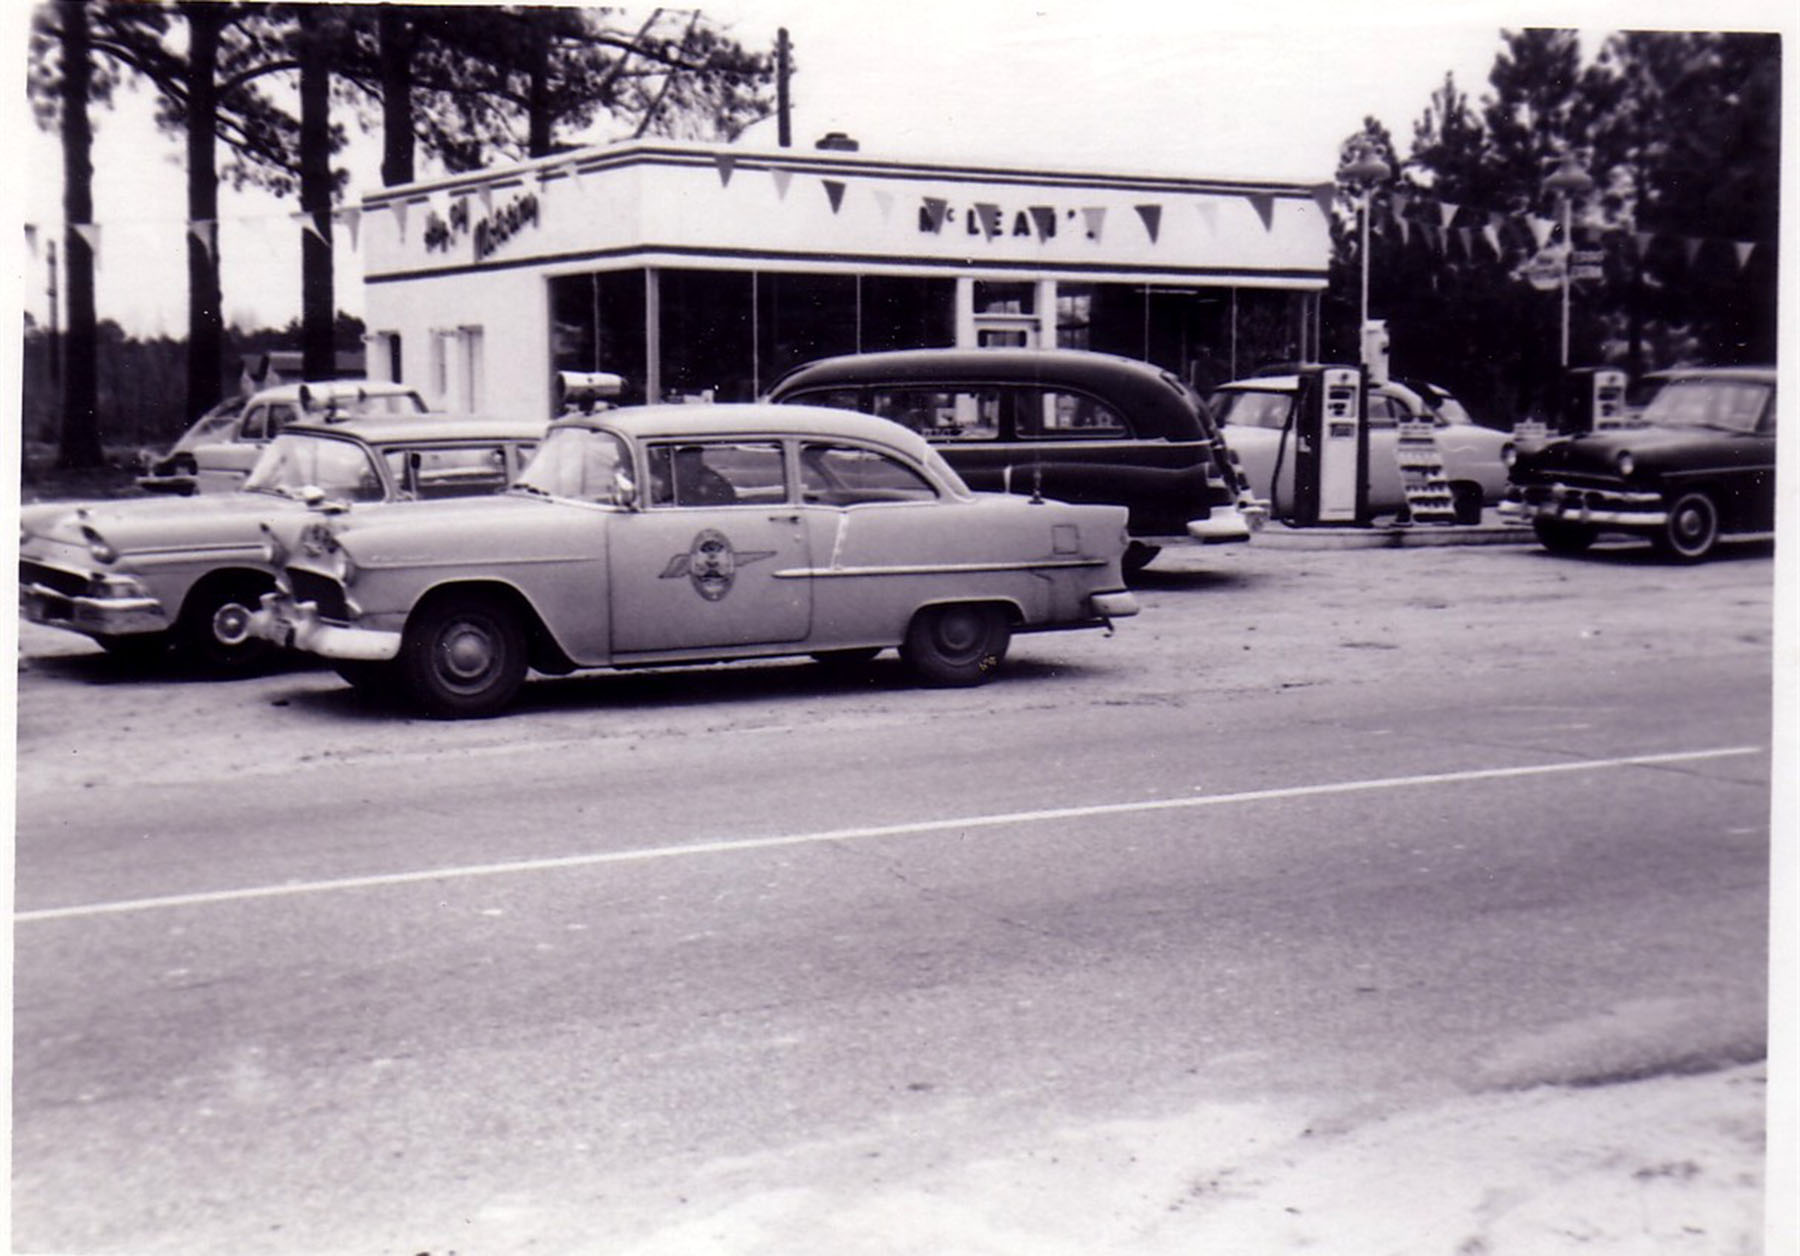 McLean's Esso Station across from Blythewood School.  Taken in 1956 by Hudnalle McLean Sr.